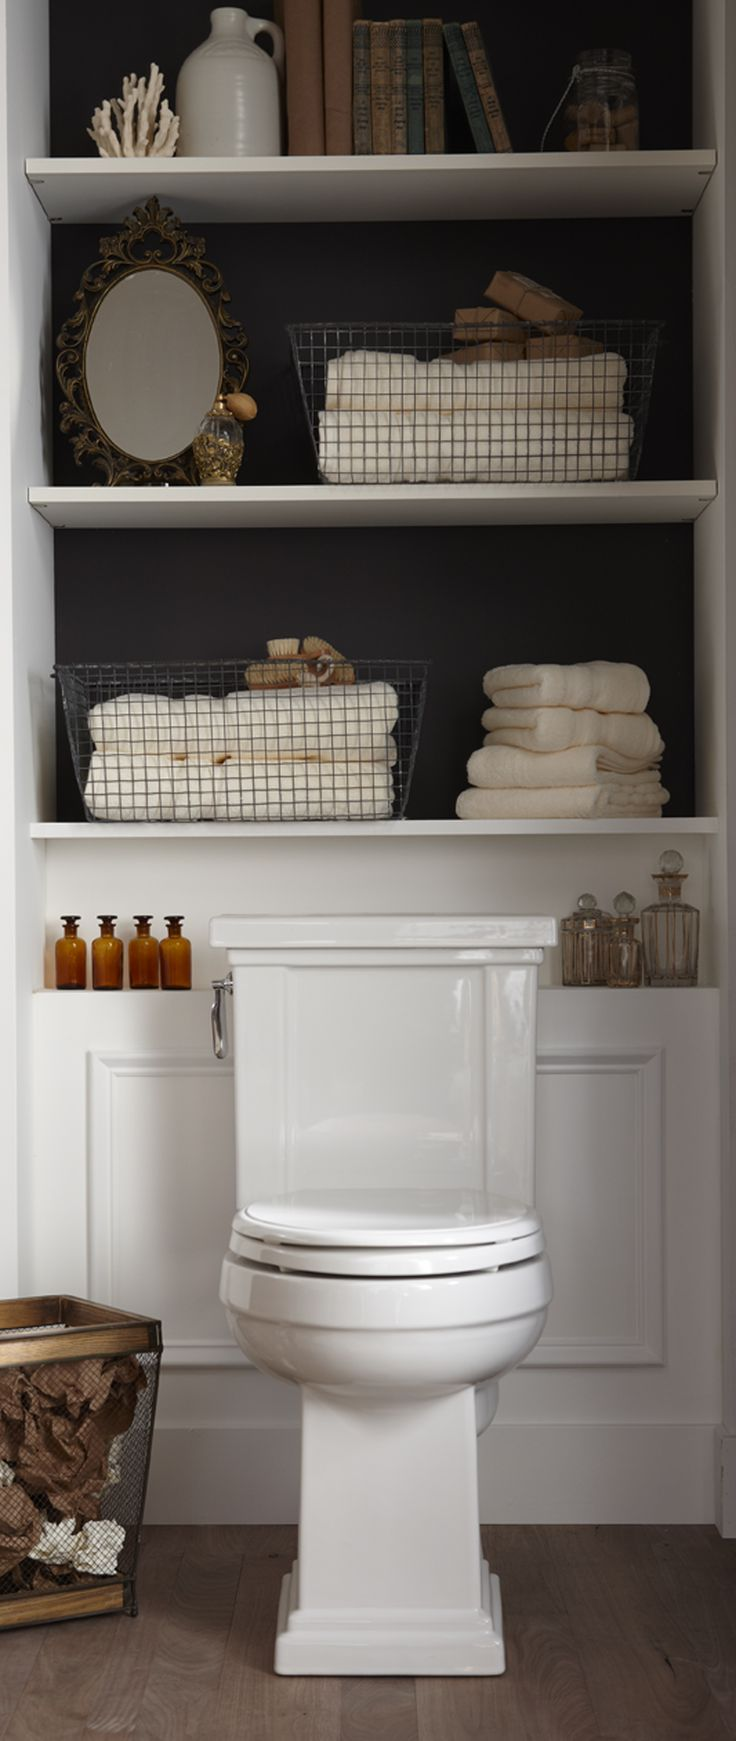 Bathroom storage for towels - Ways To Organize Your Bathroom